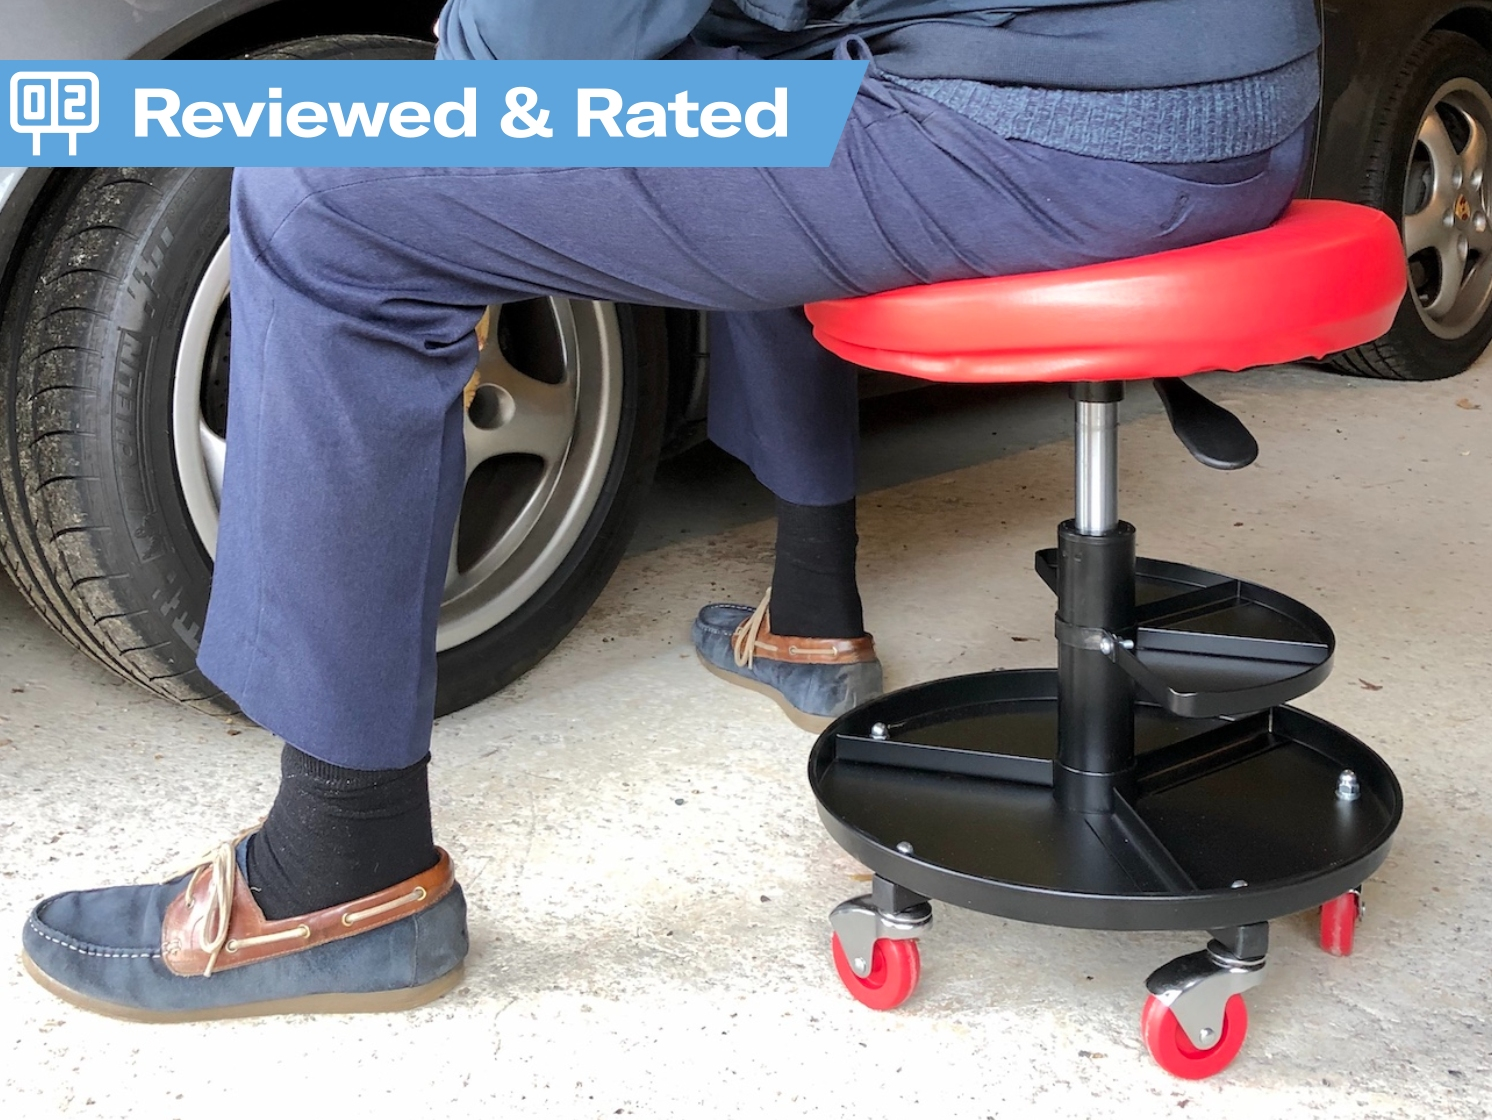 Reviewed & Rated: Best mechanic's seats